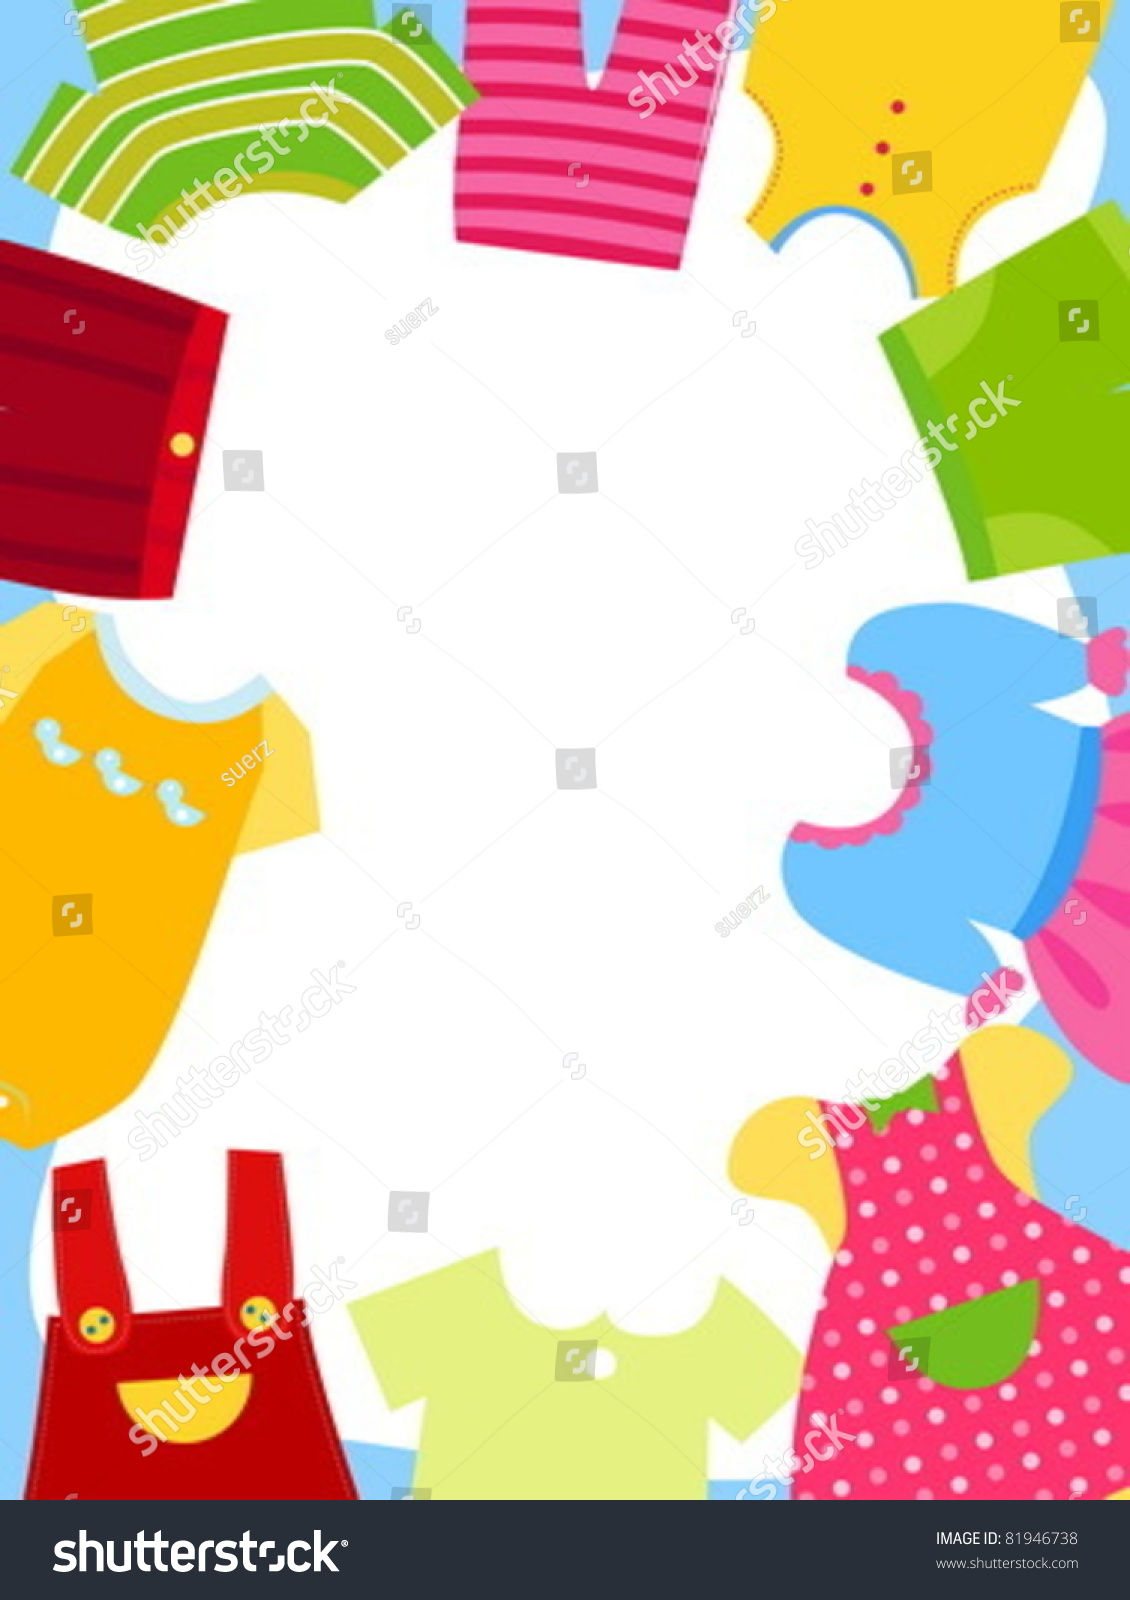 Kids Clothes Frame Stock Vector (Royalty Free) 81946738 - Shutterstock